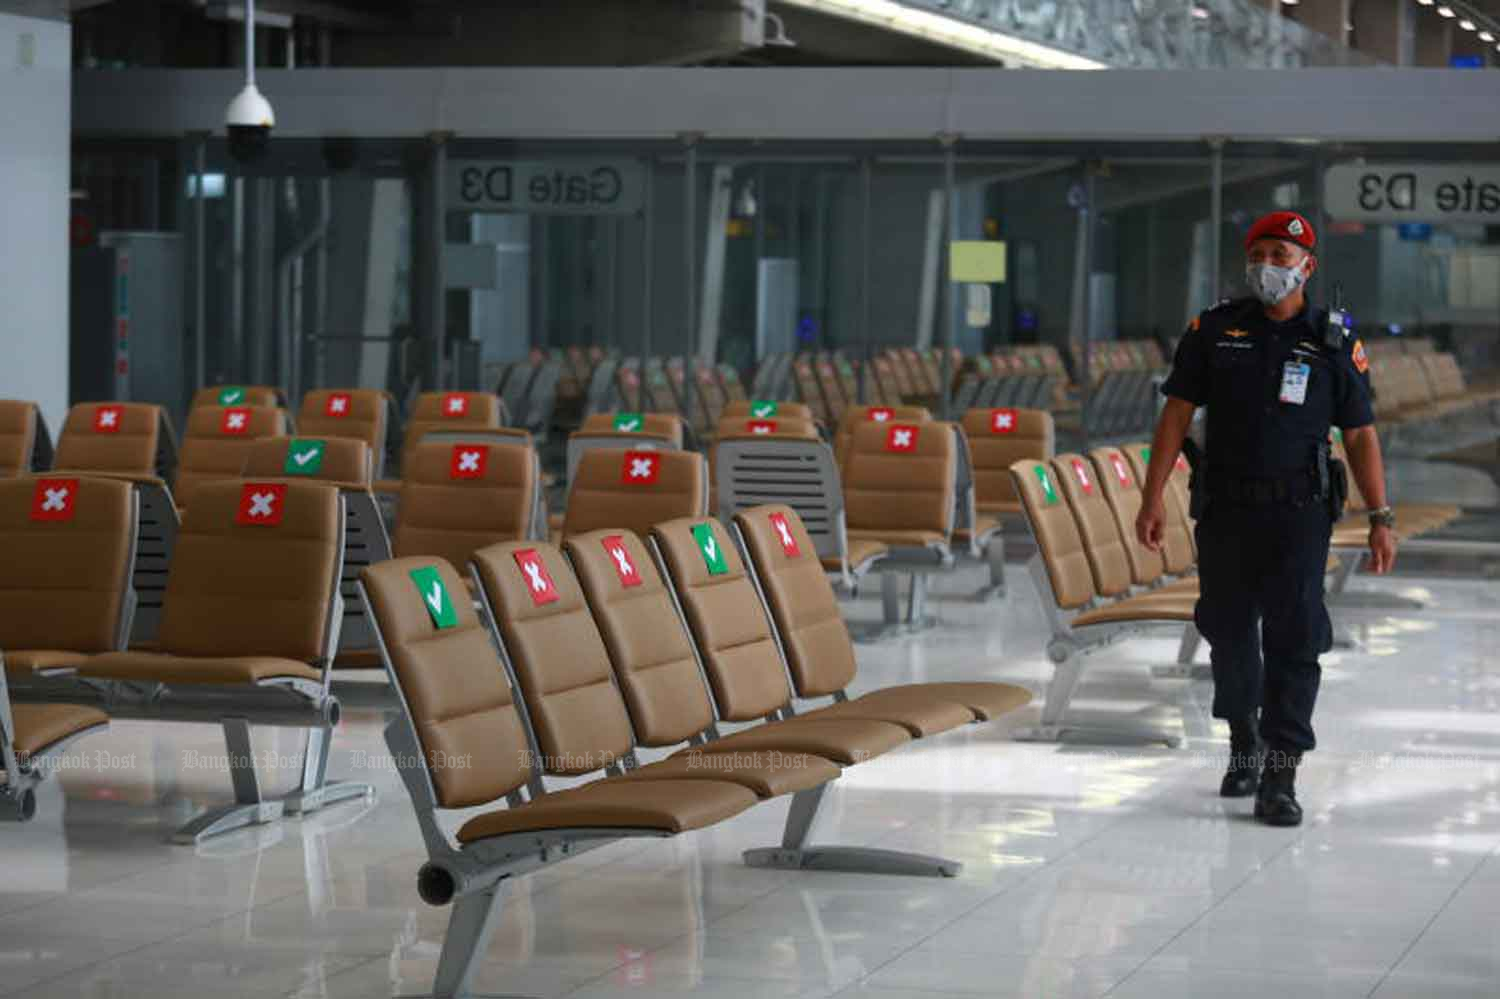 A security guard checks the passenger terminal at Suvarnabhumi airport in Samut Prakan province on Friday. The first foreign visitors since the coronavoirus lockdown started will be arriving this month - selected groups, for specific purposes. (Photo: Somchai Poomlard)